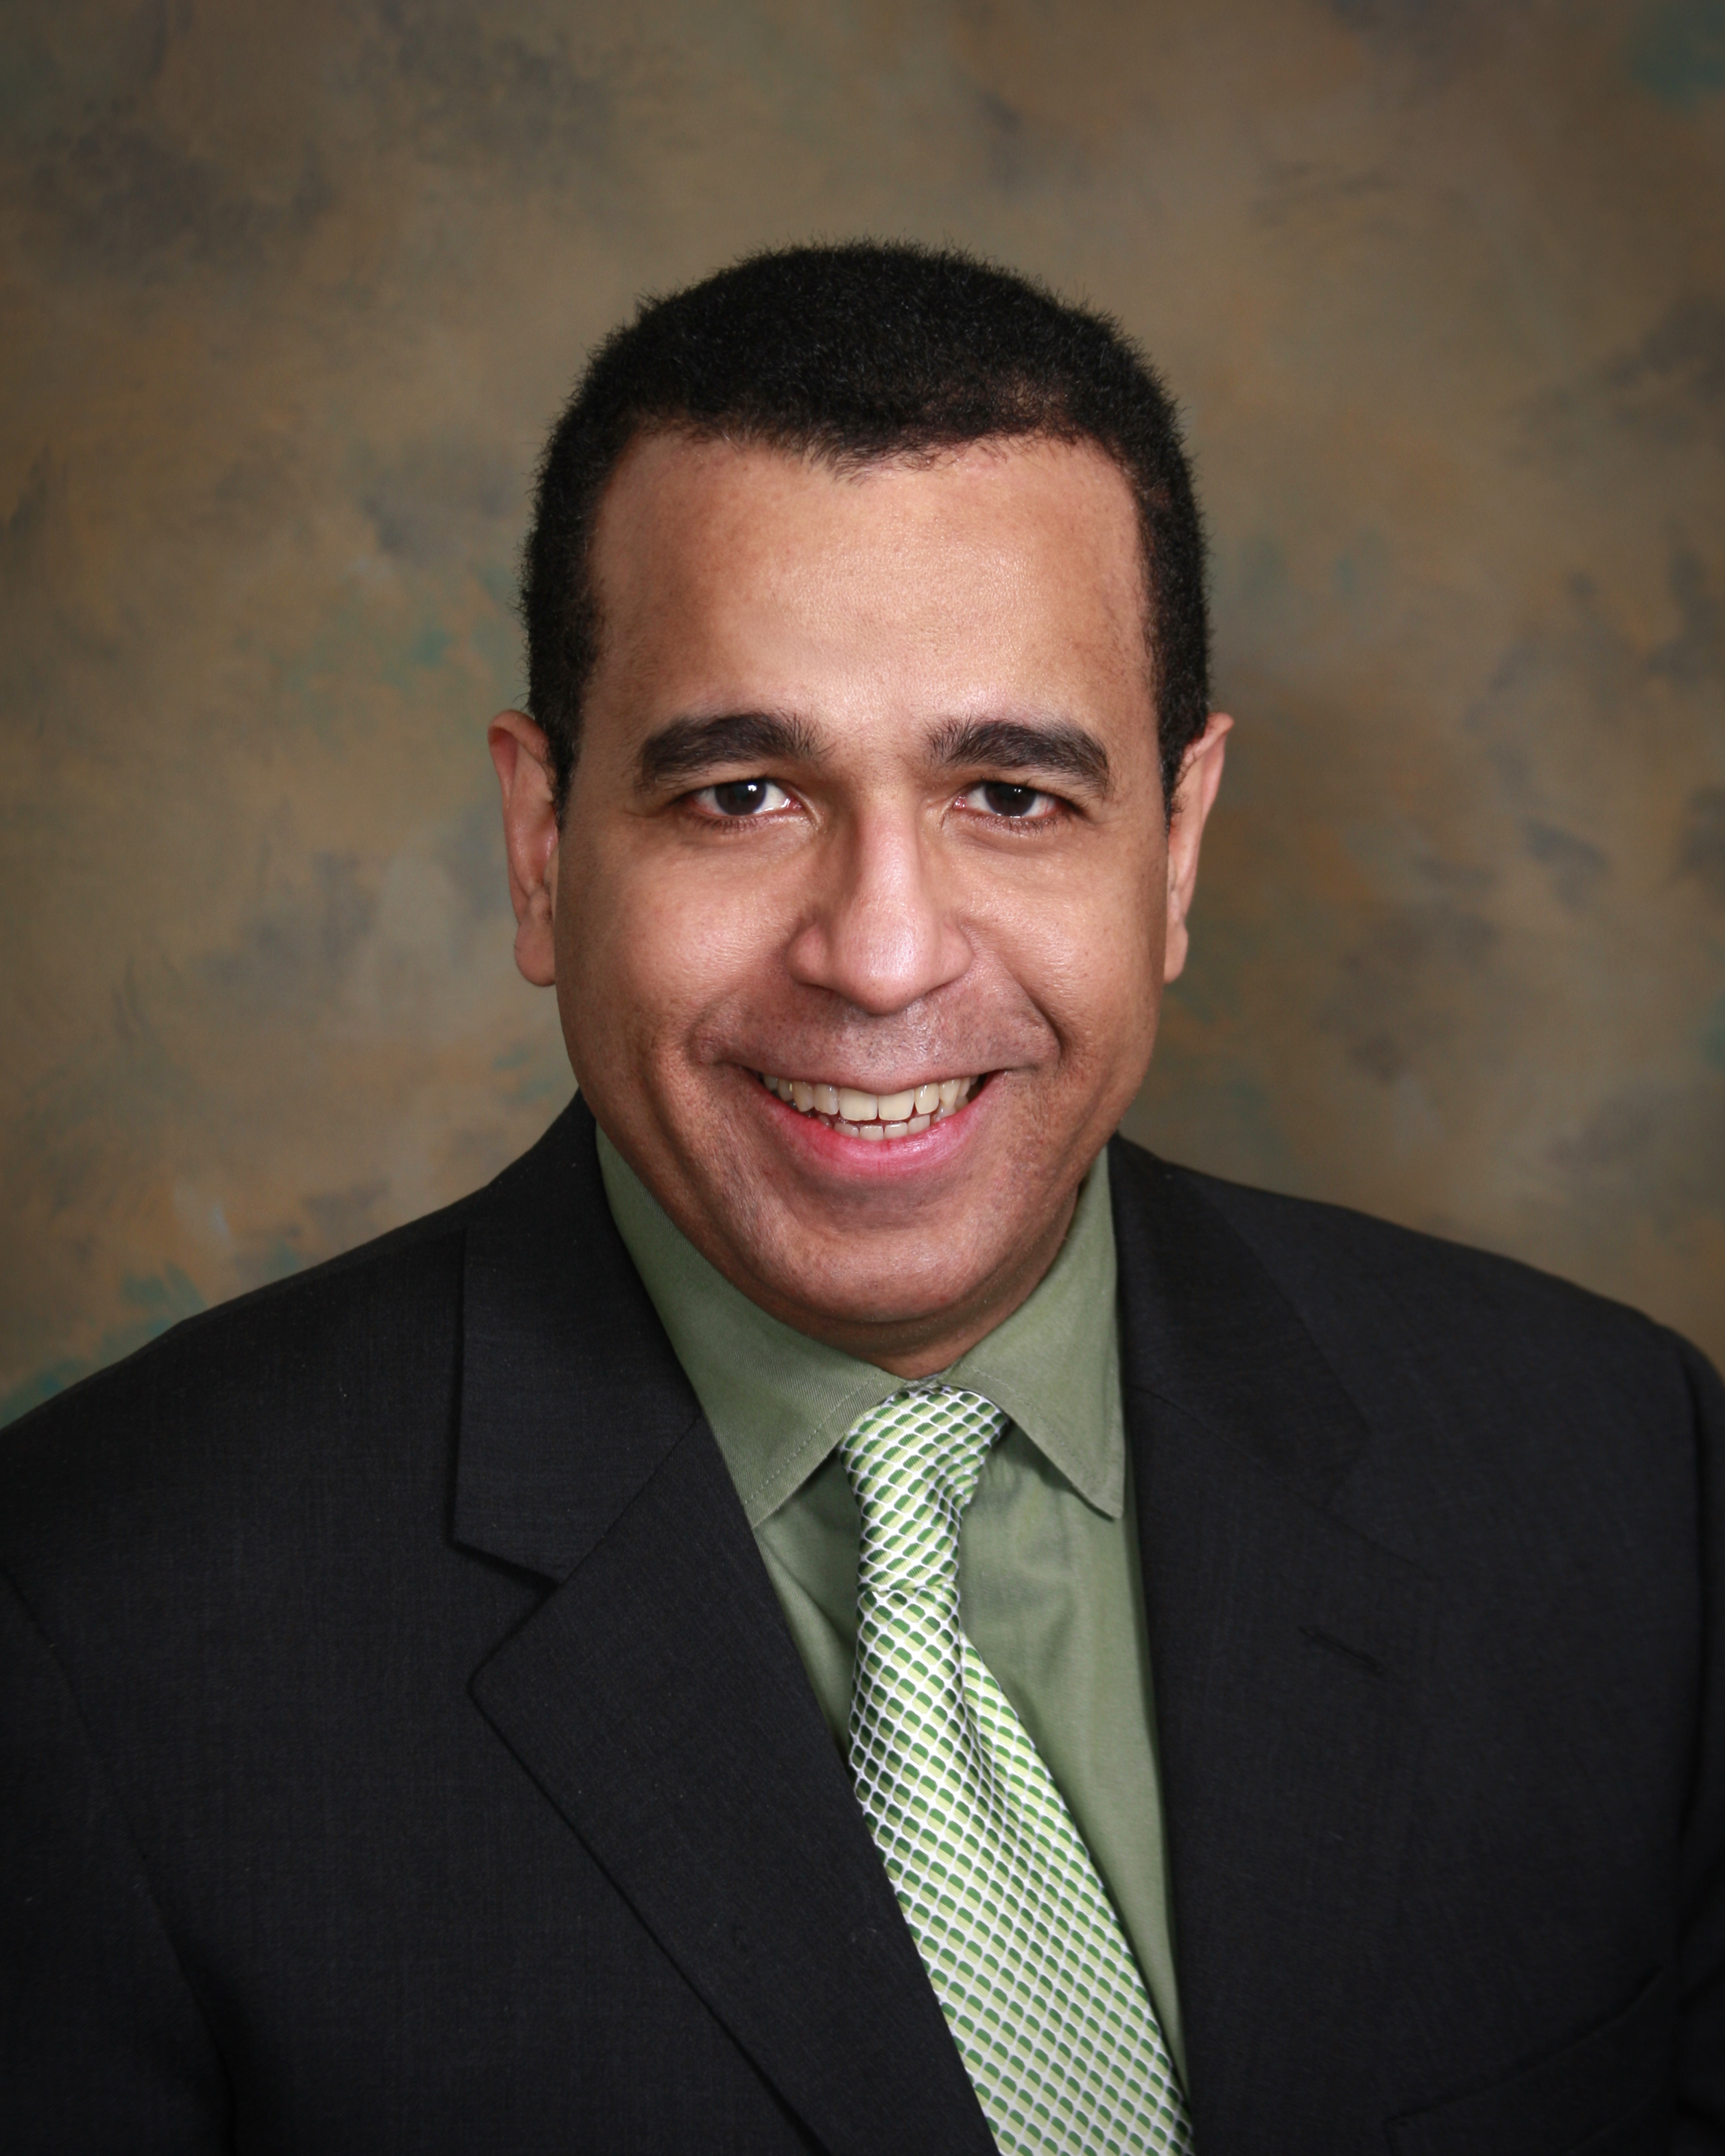 Dr. Jose T. Aponte Rodriguez, MD, PC, MD